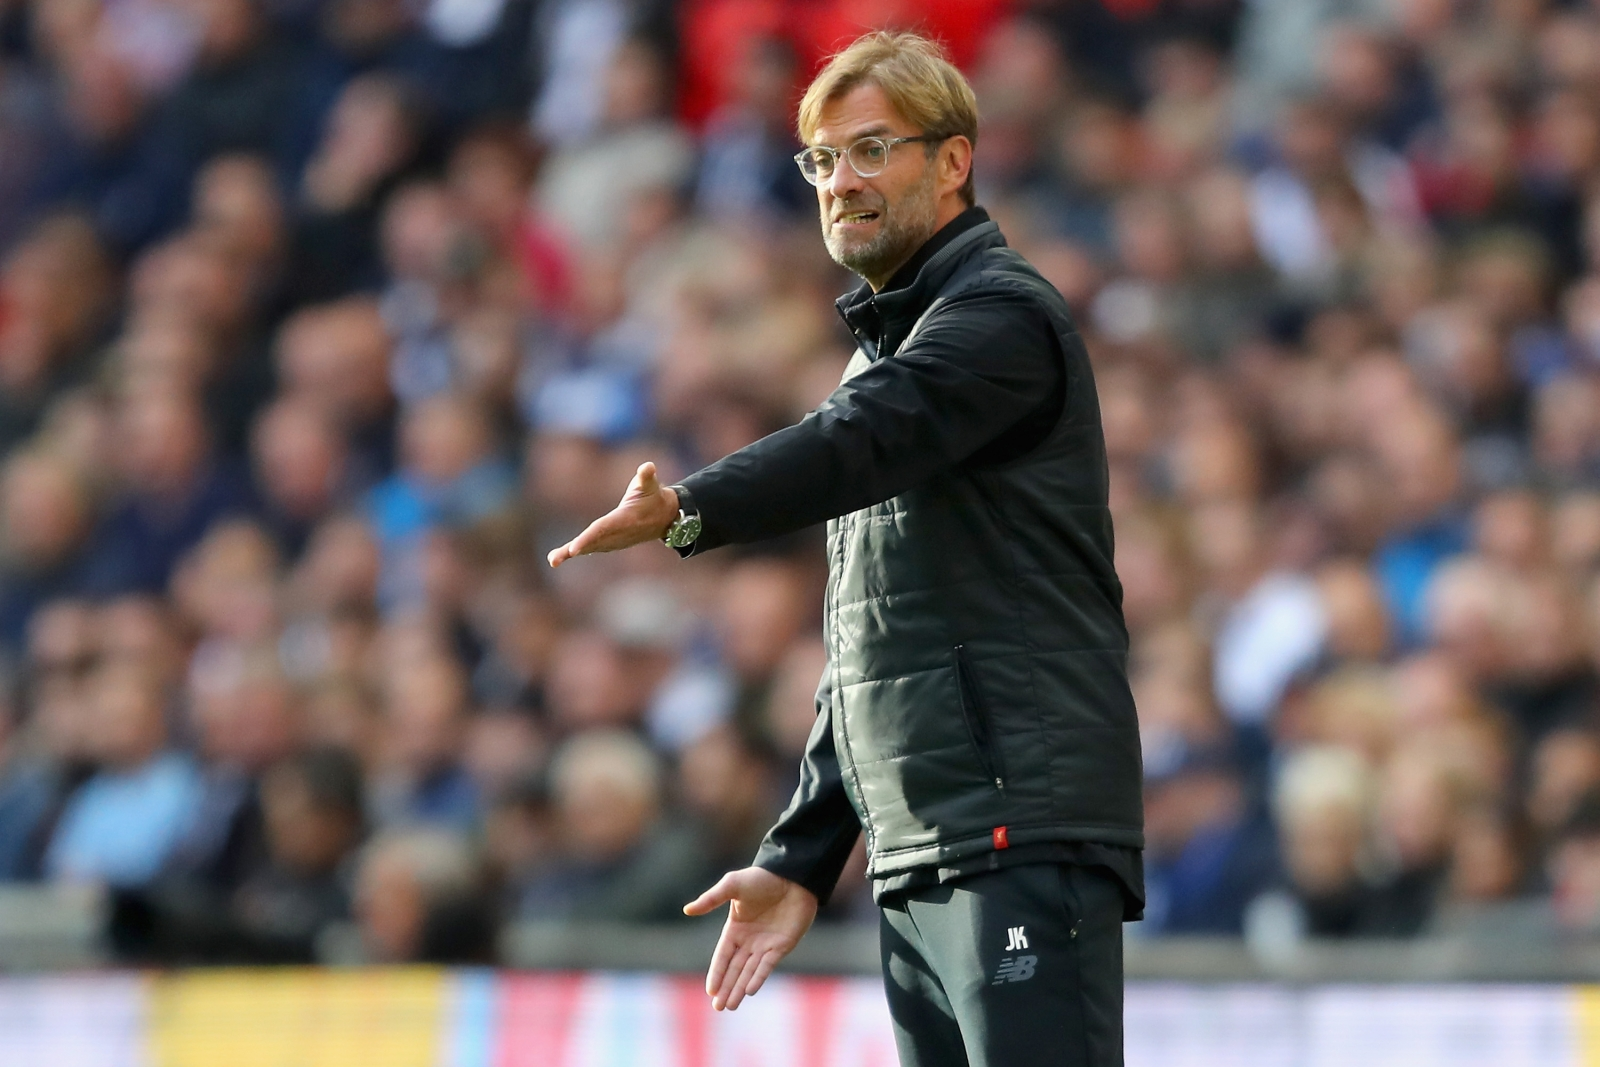 jurgen-klopp-slams-liverpools-defending-in-horror-show-at-tottenham-hotspurs